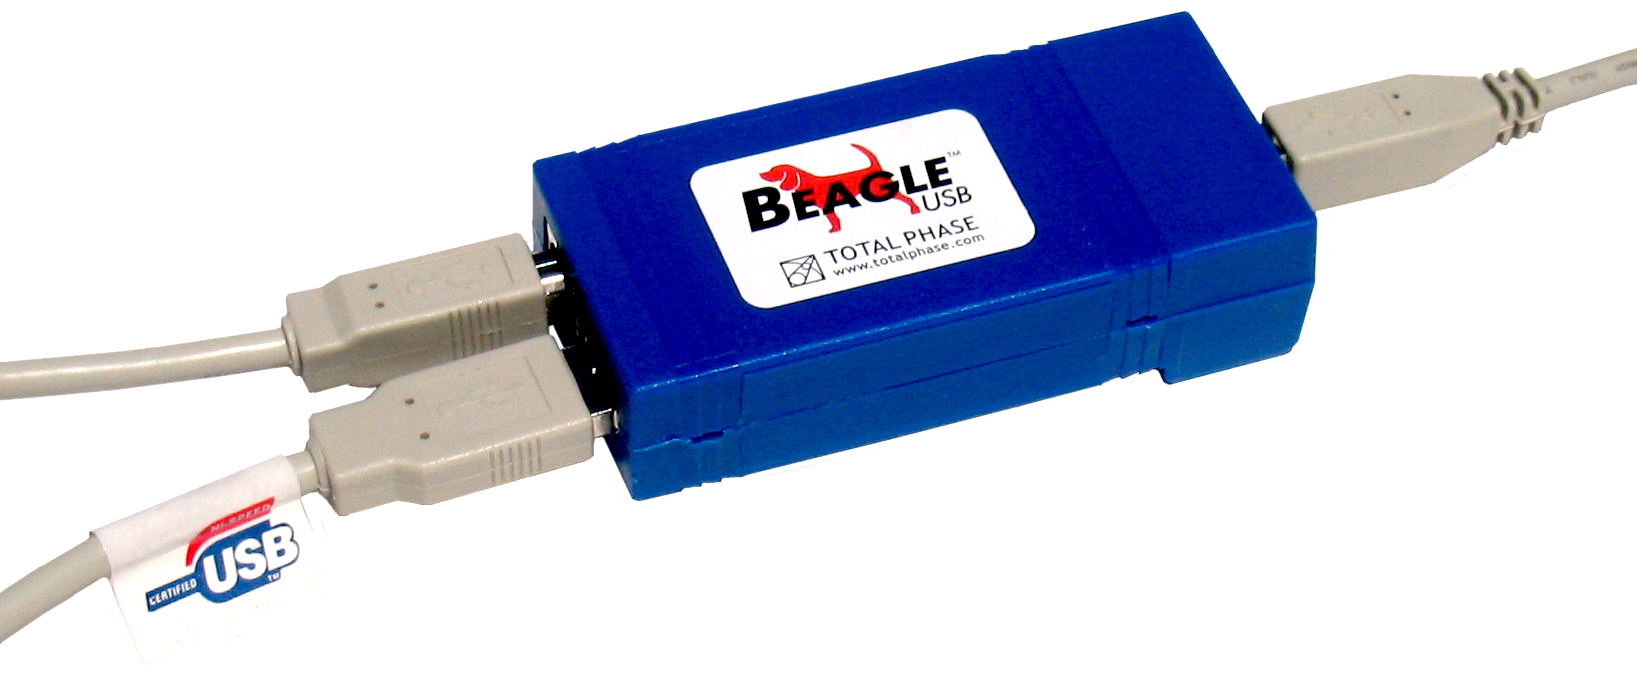 Total Phase Launches the Beagle USB Protocol Analyzer a